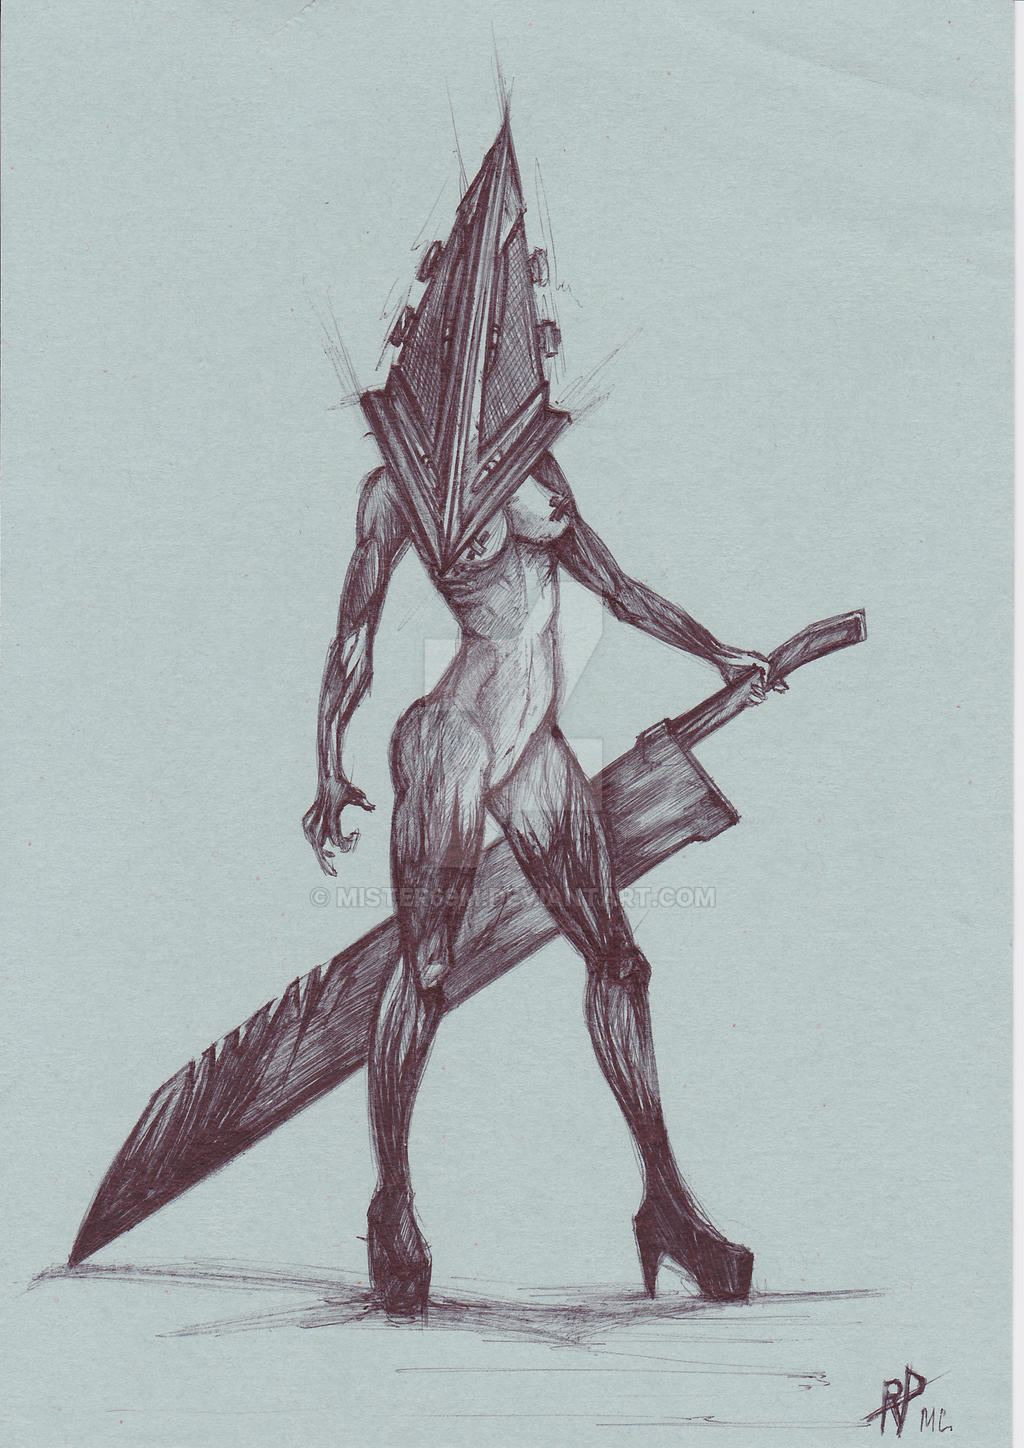 pyramid head girl by mister69m on deviantart